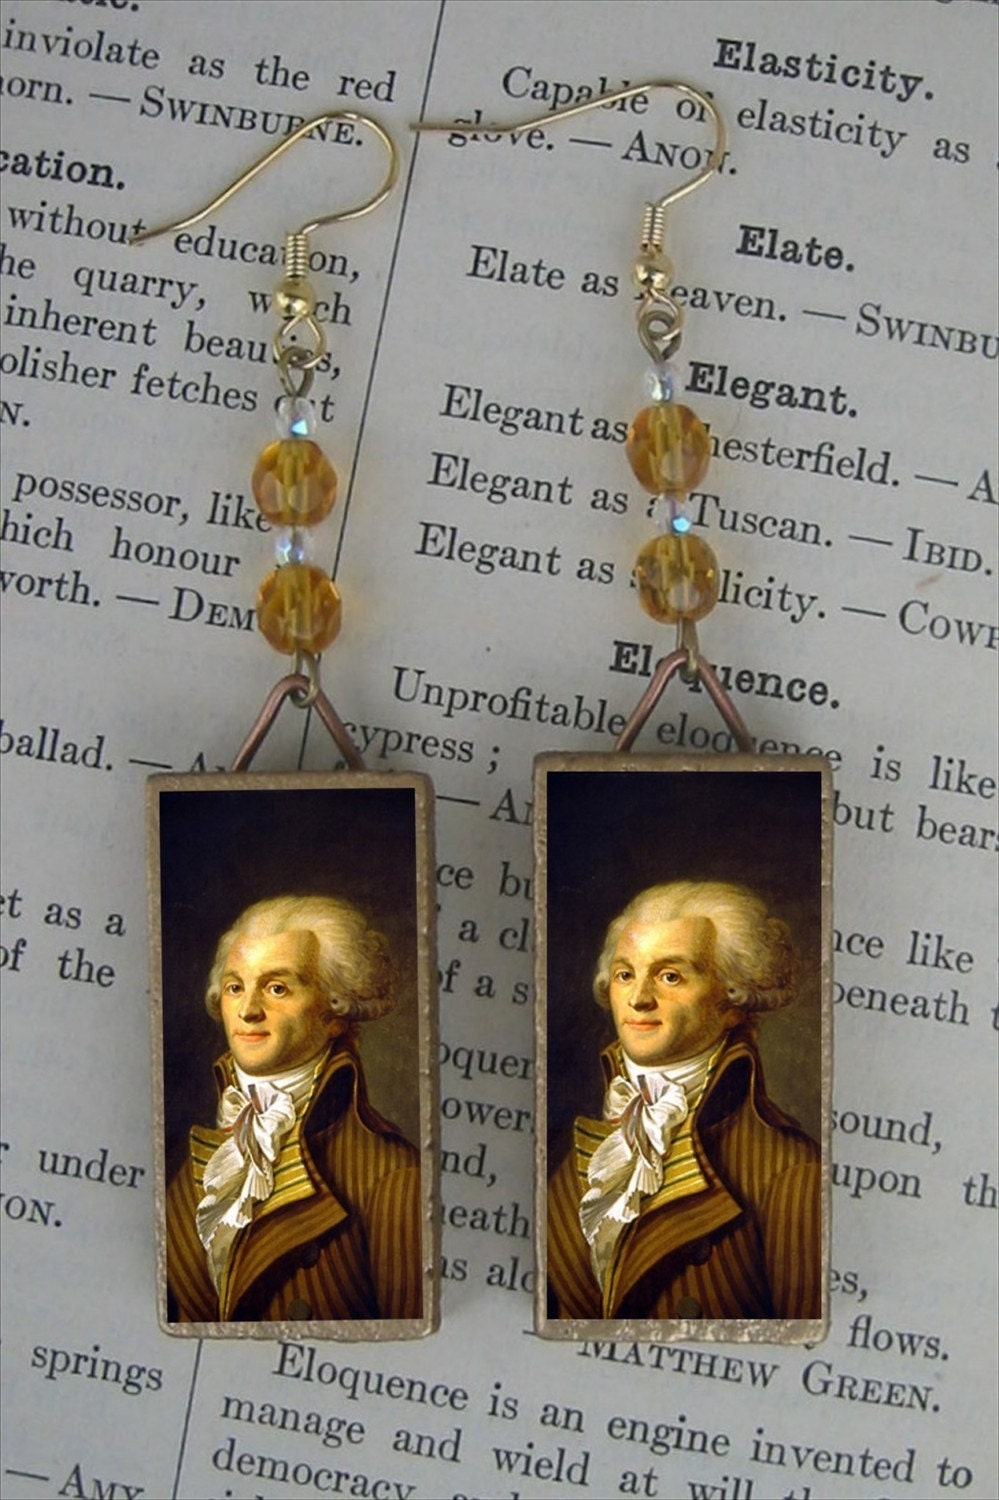 robespierre and the french revolution essay The radical period of the french revolution essay the radical period of the french revolution essay marat and robespierre,it would be only a matter of months.